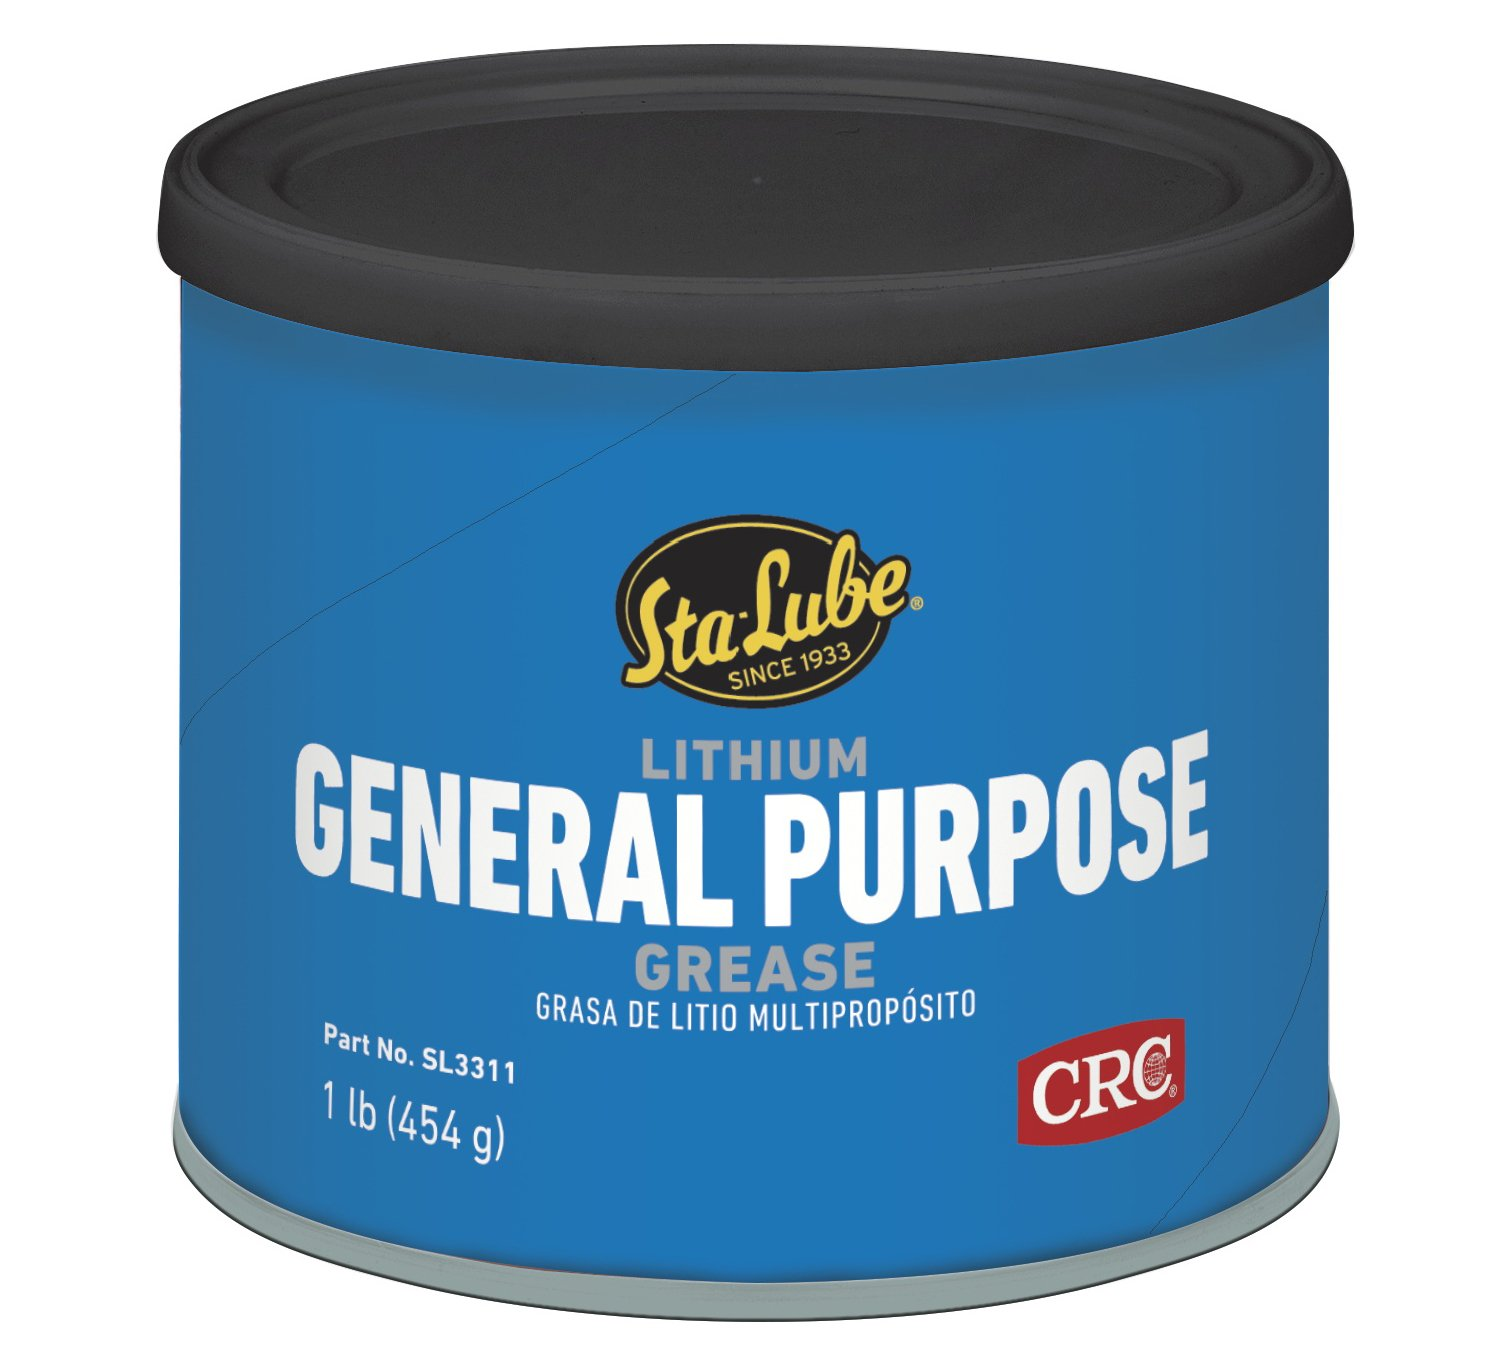 Sta-Lube SL3311 Lithium General Purpose Grease - 14 wt. oz. by Sta-Lube